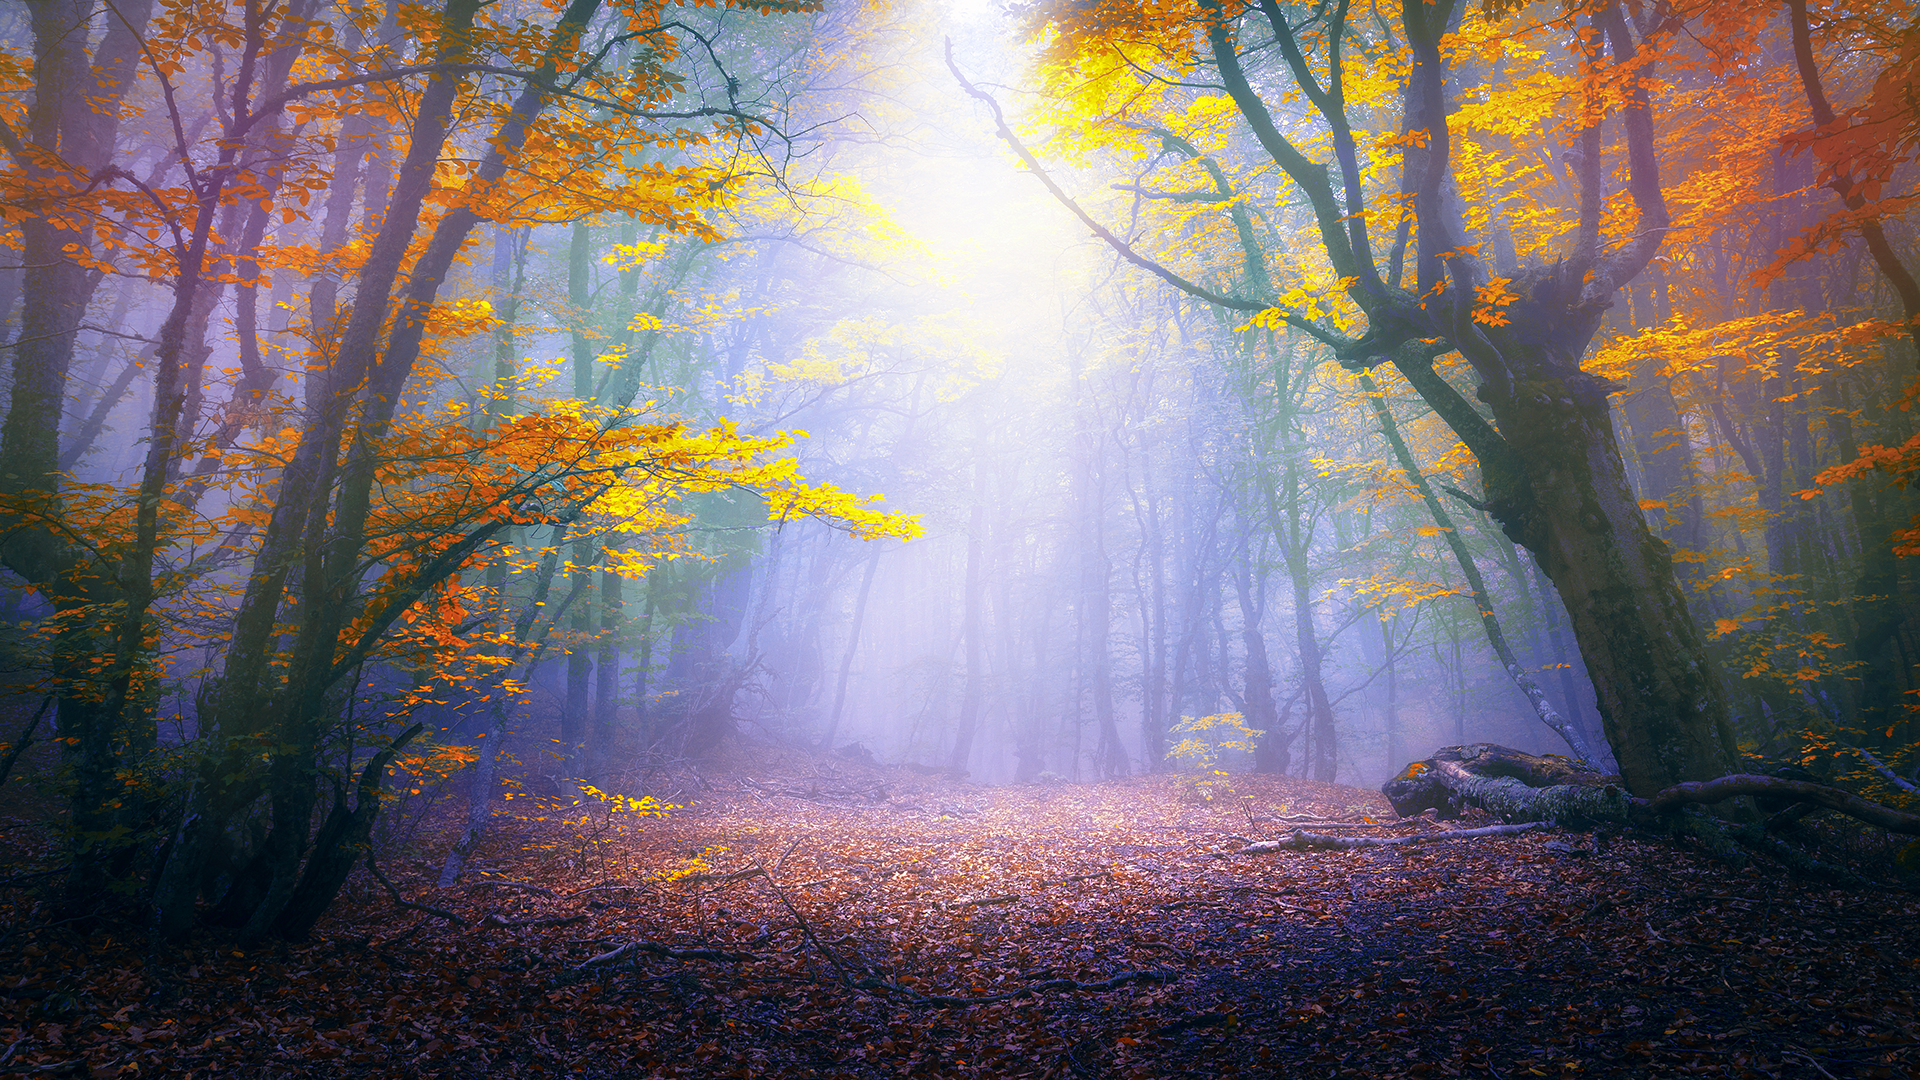 Download this free enchanted forest tablet wallpaper in hd or 4k 0165 - Tablet wallpaper 4k ...